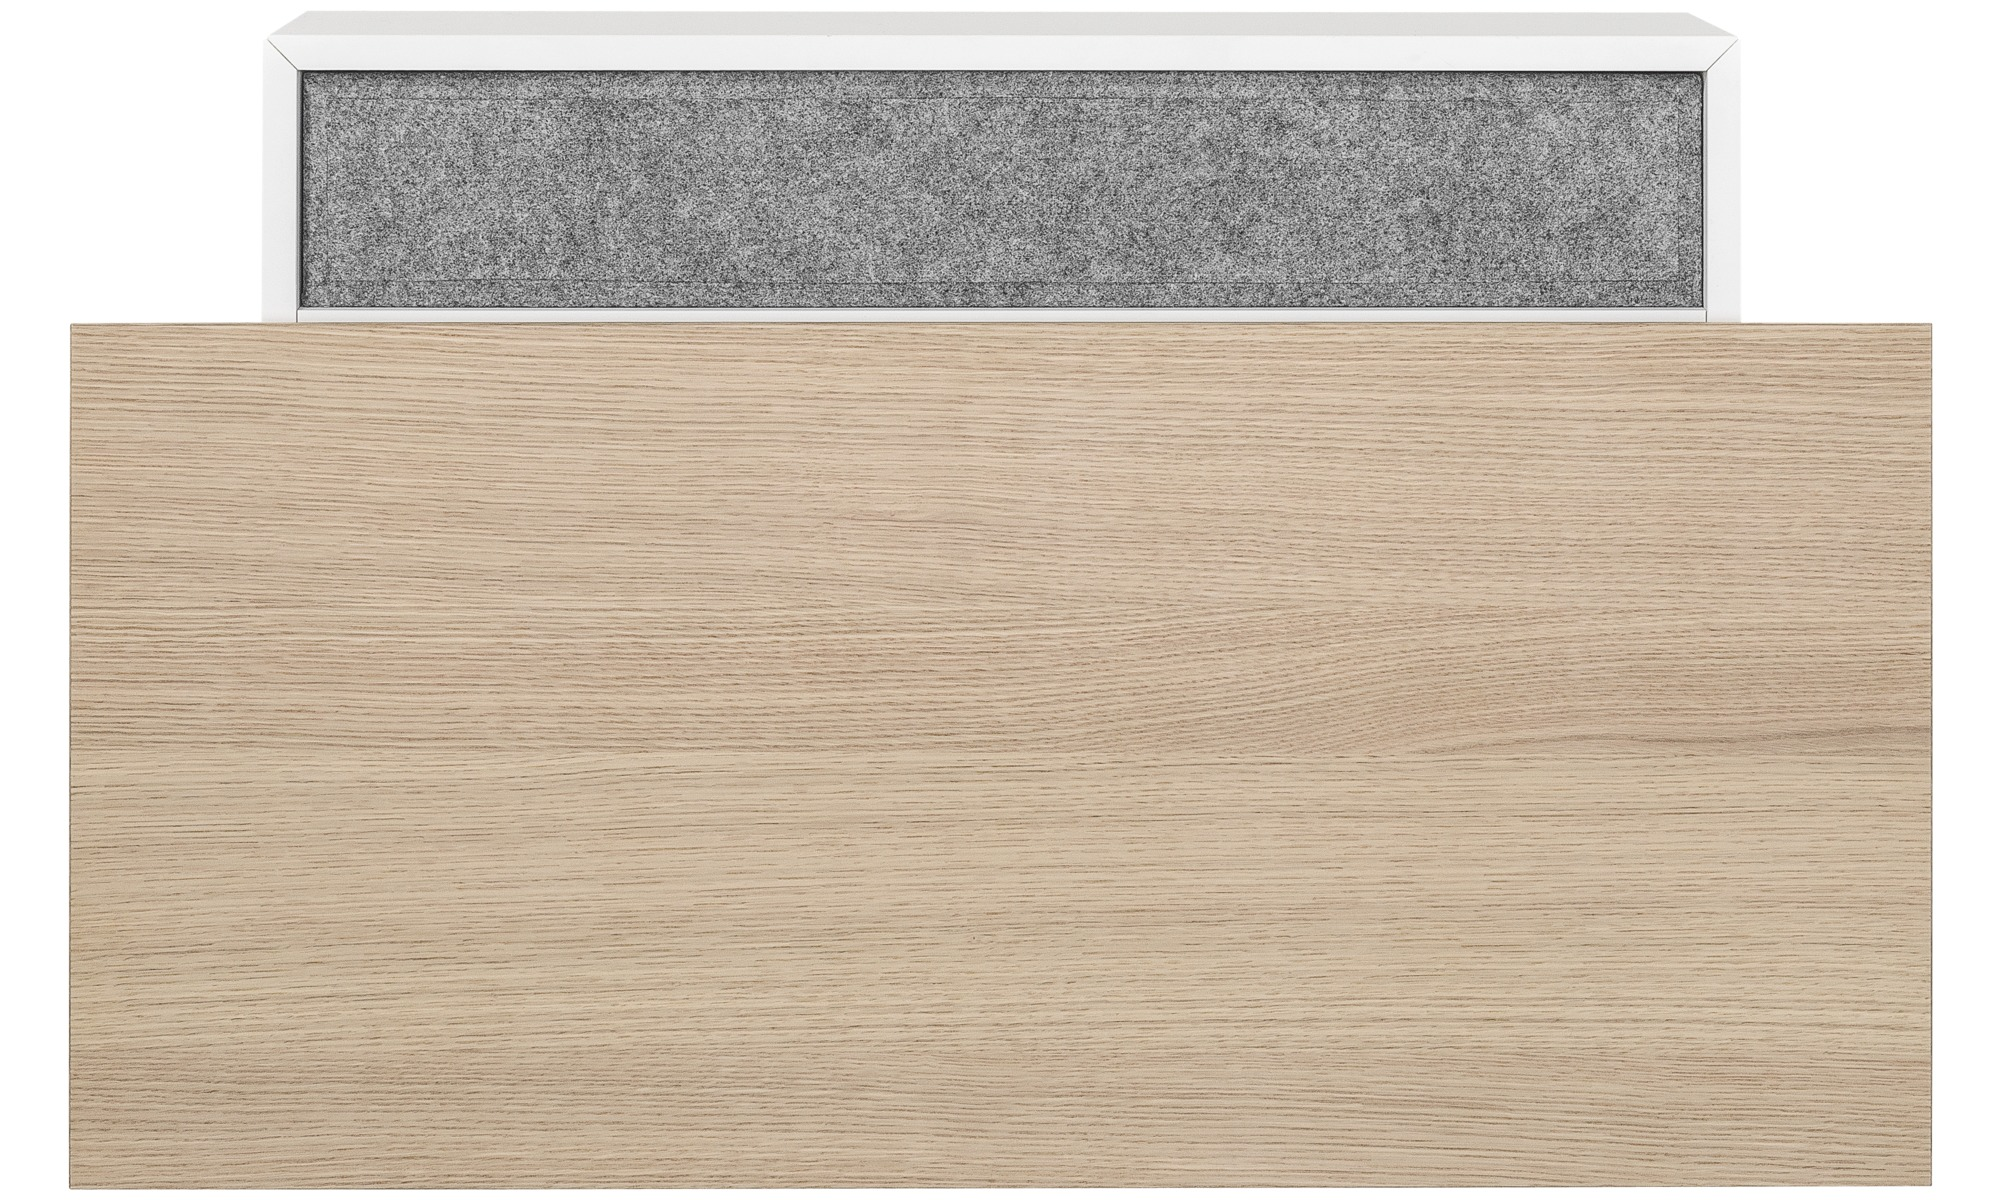 Desks - Cupertino wall office - rectangular - White - Lacquered